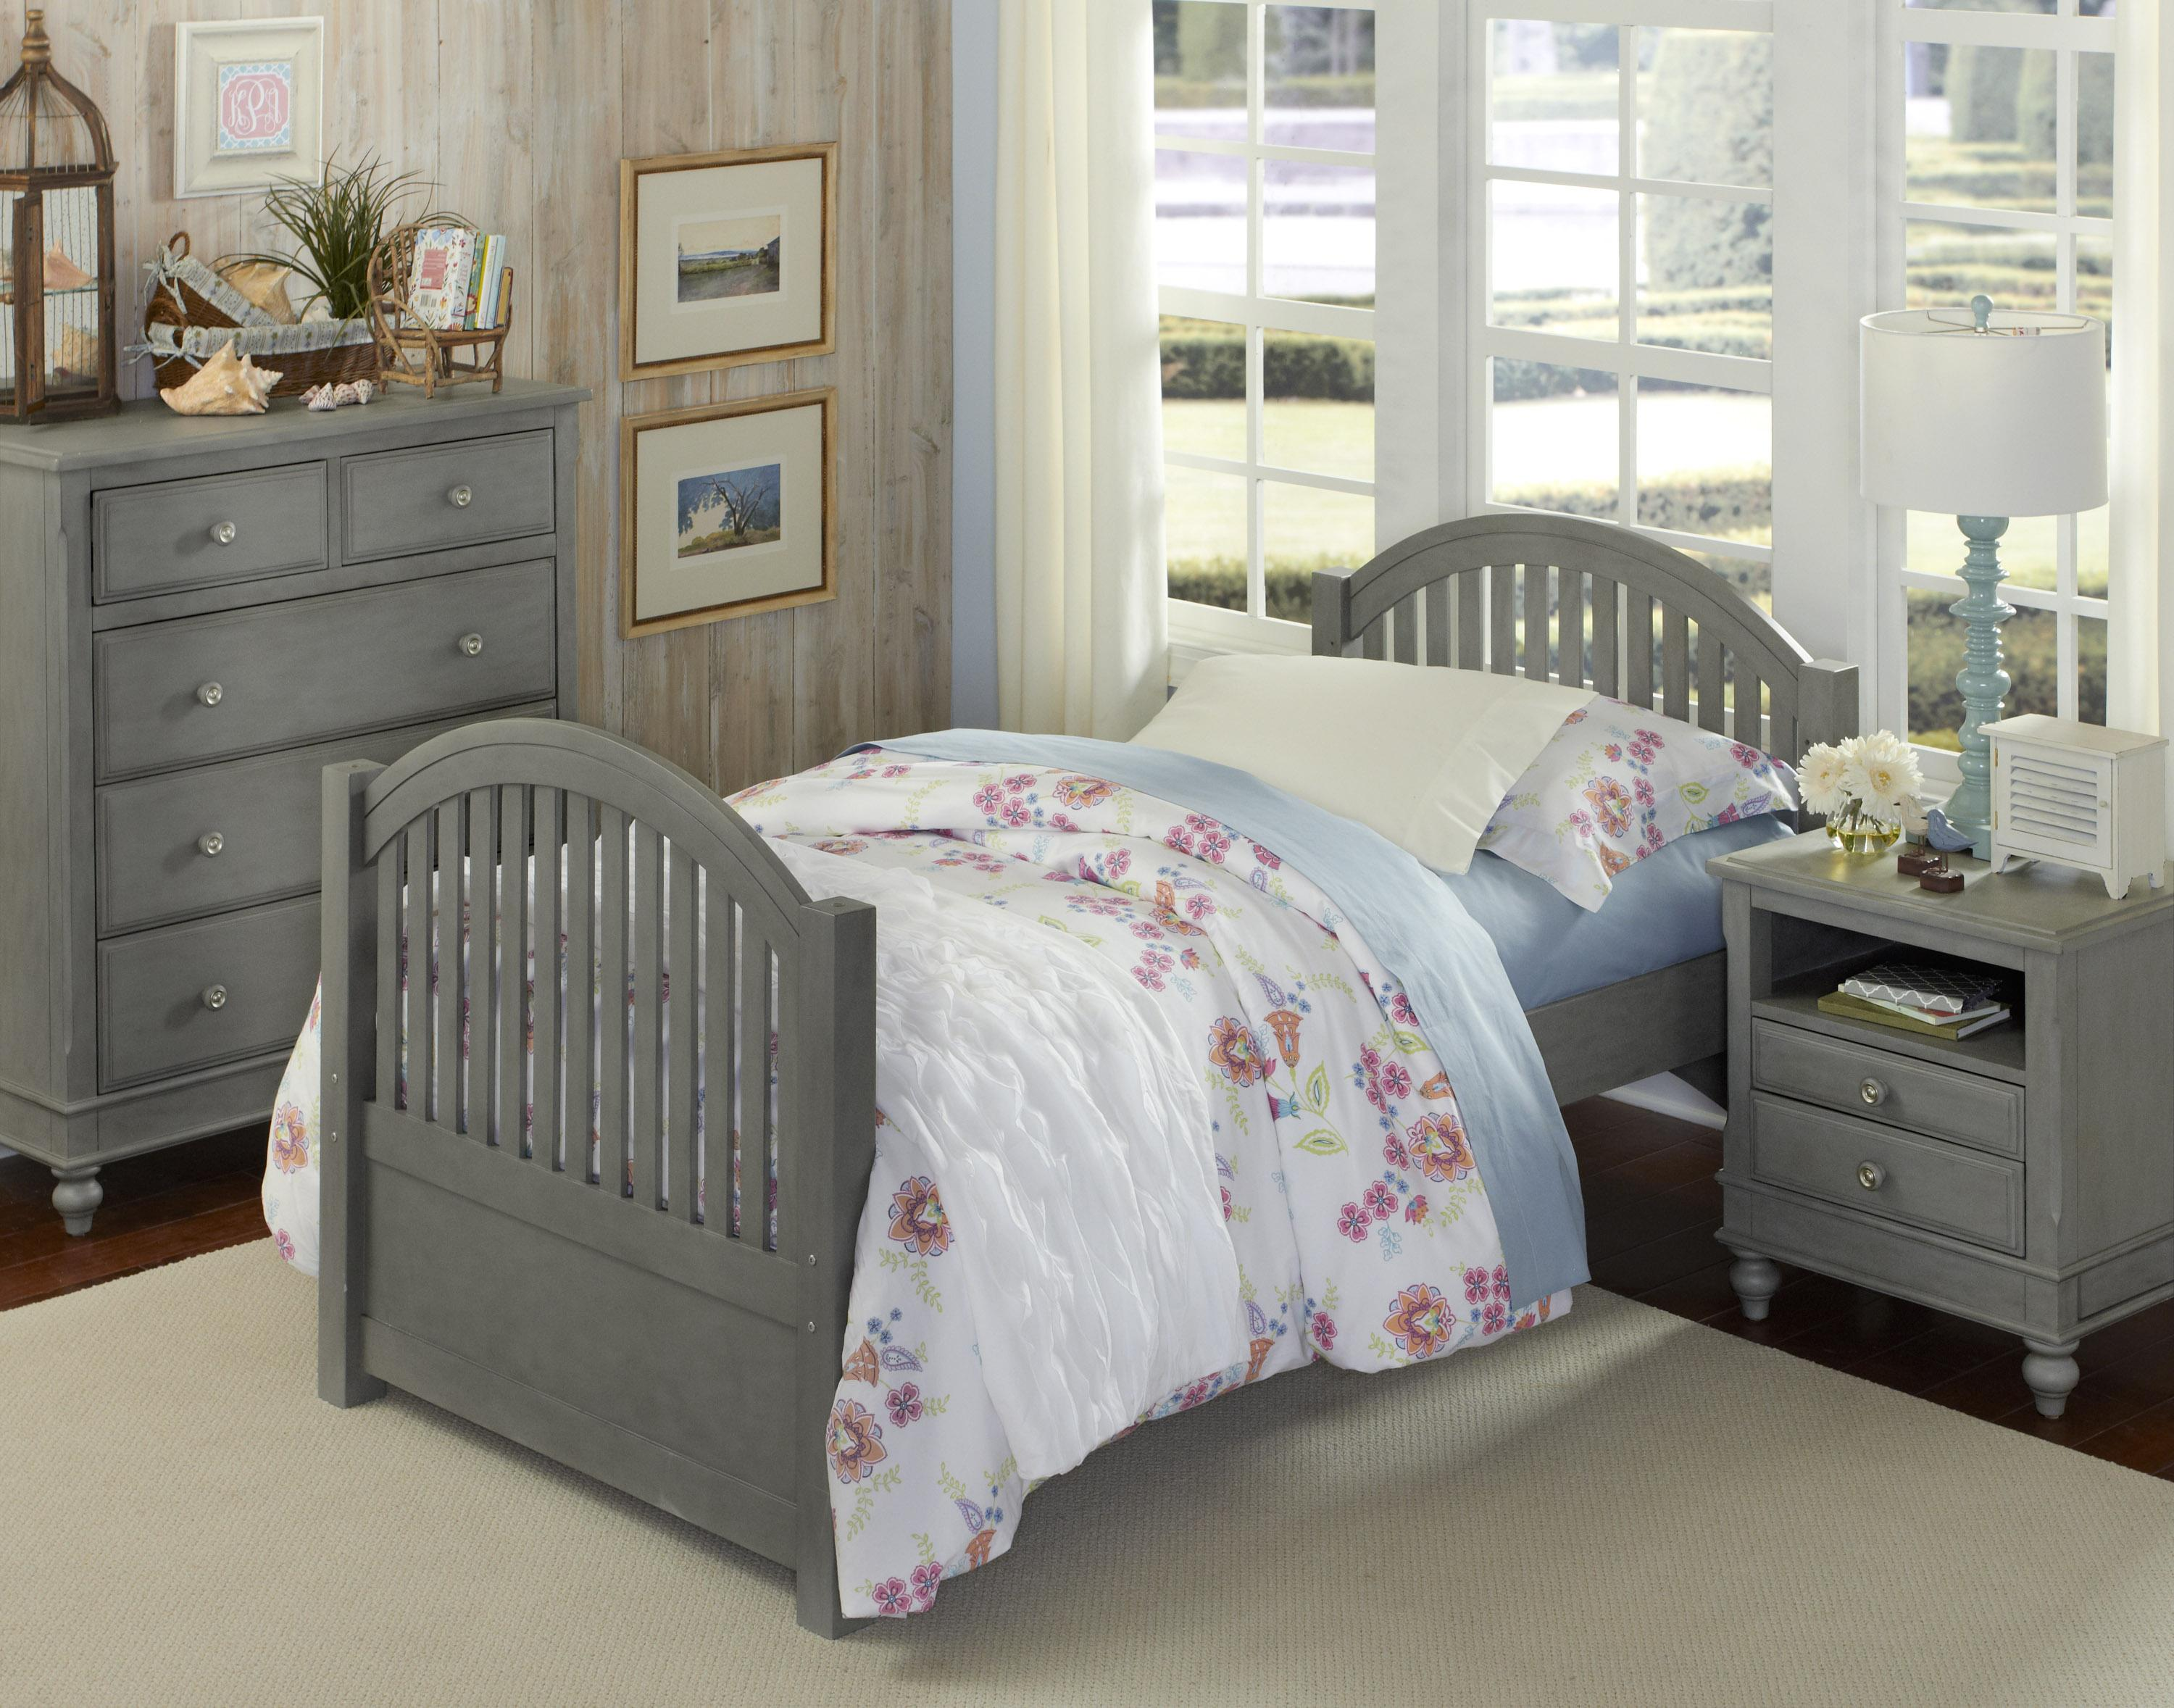 NE Kids Lake House Twin Adrian Standard Bed  - Item Number: 200 T Bed Group 2